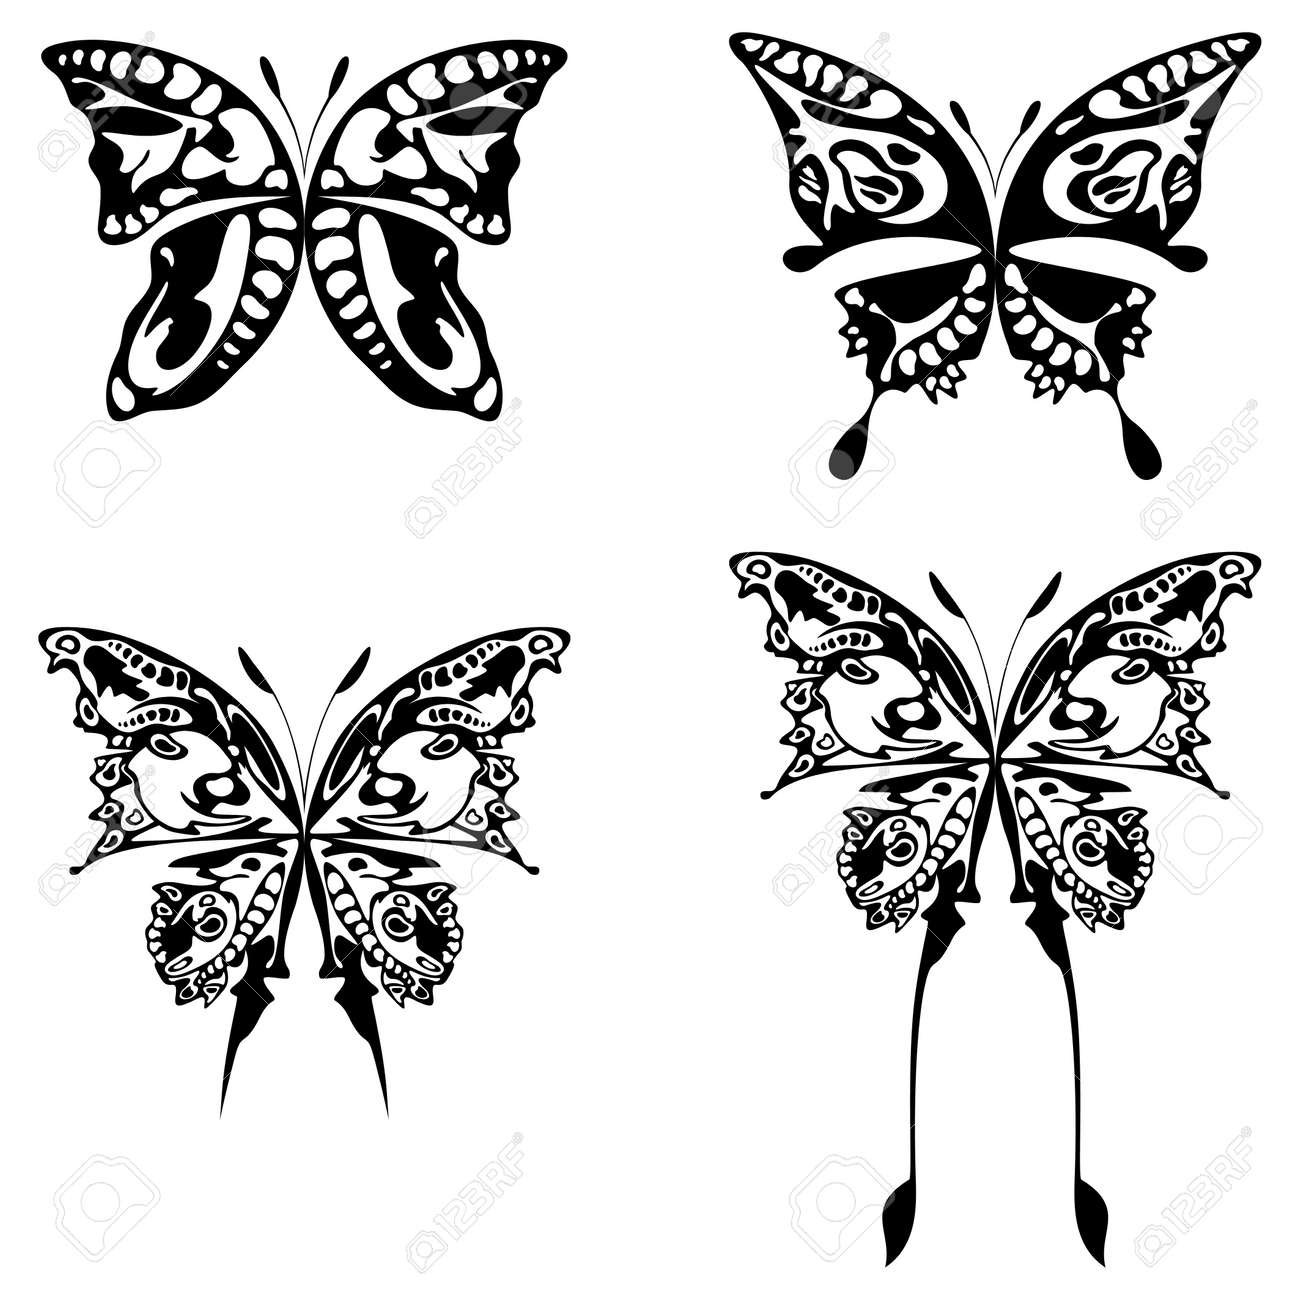 four illustration of buttefly black on white Stock Illustration - 3635889